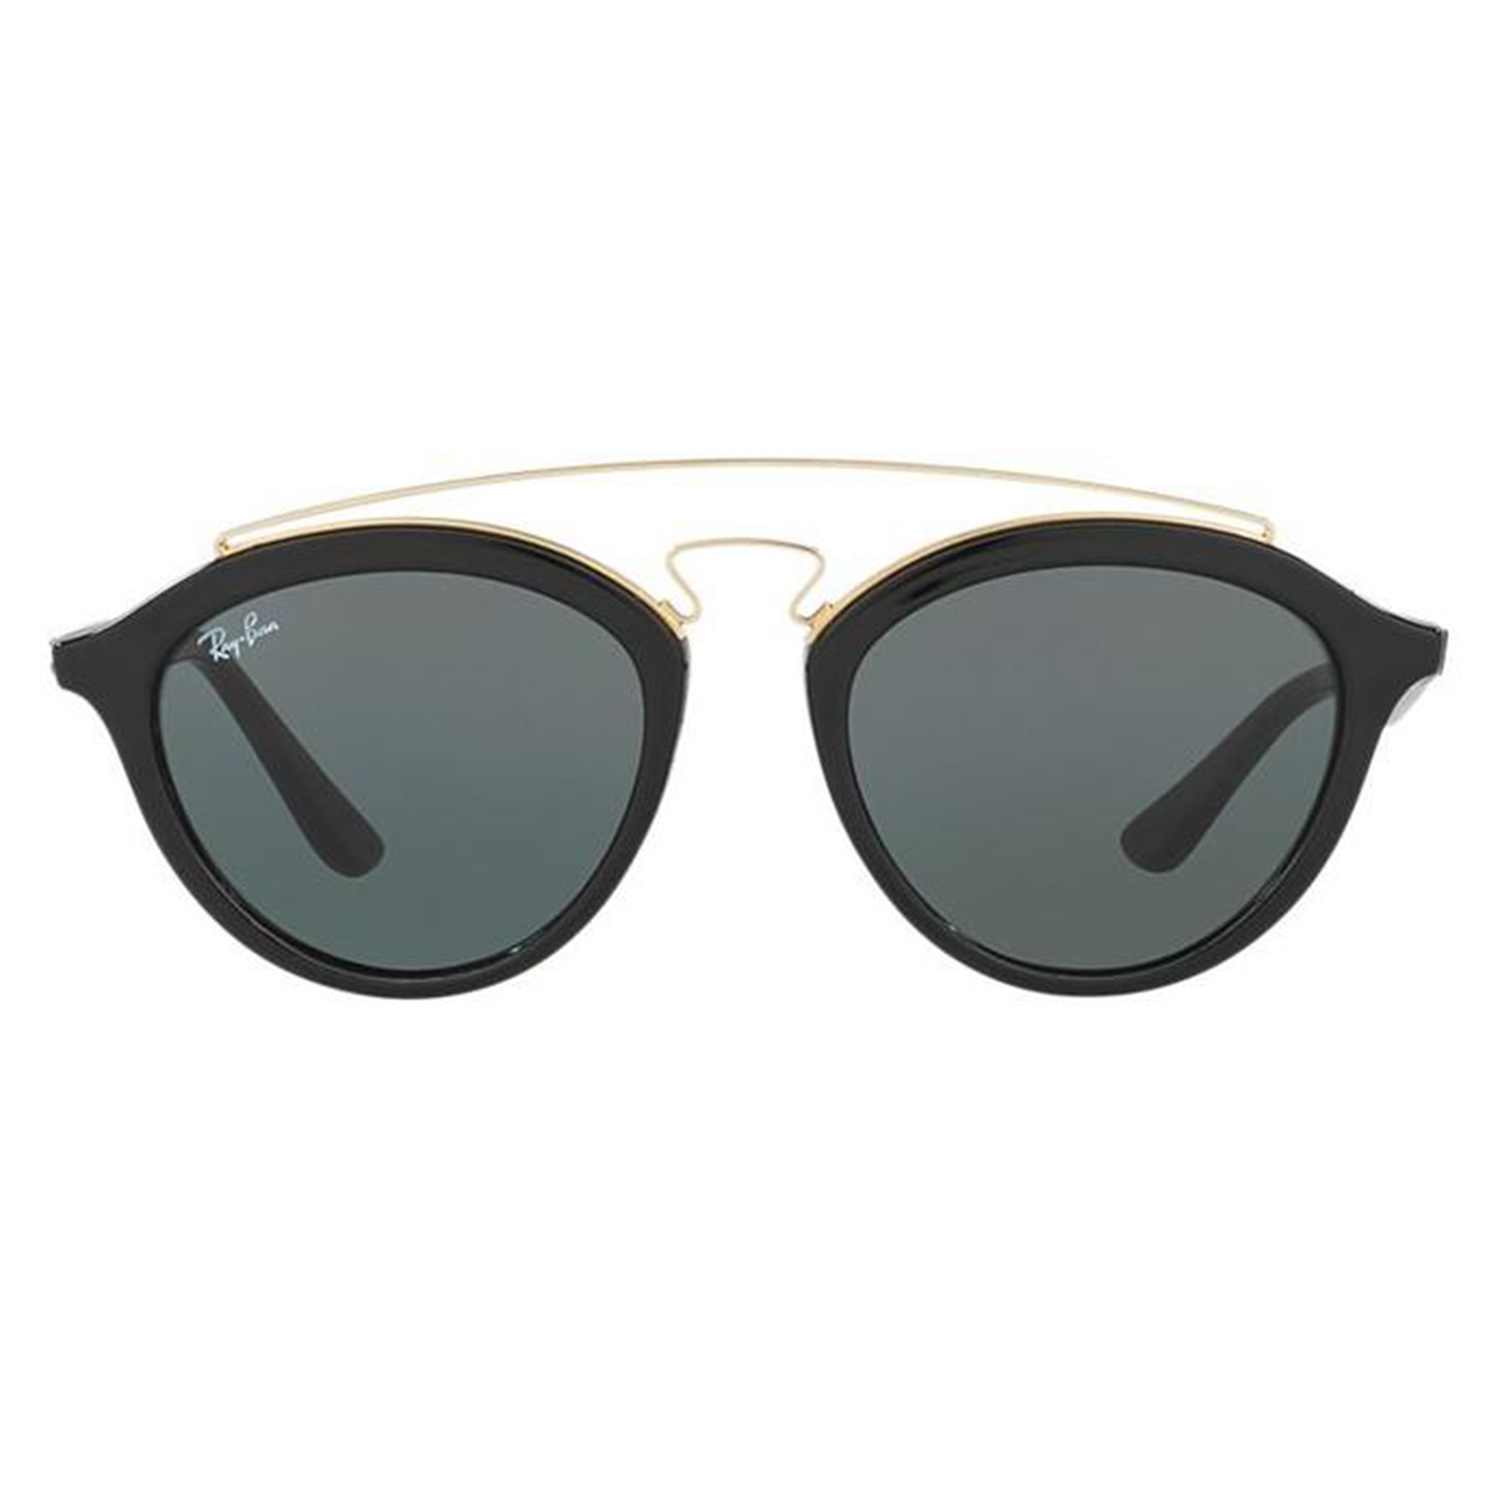 aad40ccb8d Ray-Ban Gatsby II Oval Sunglasses For Women